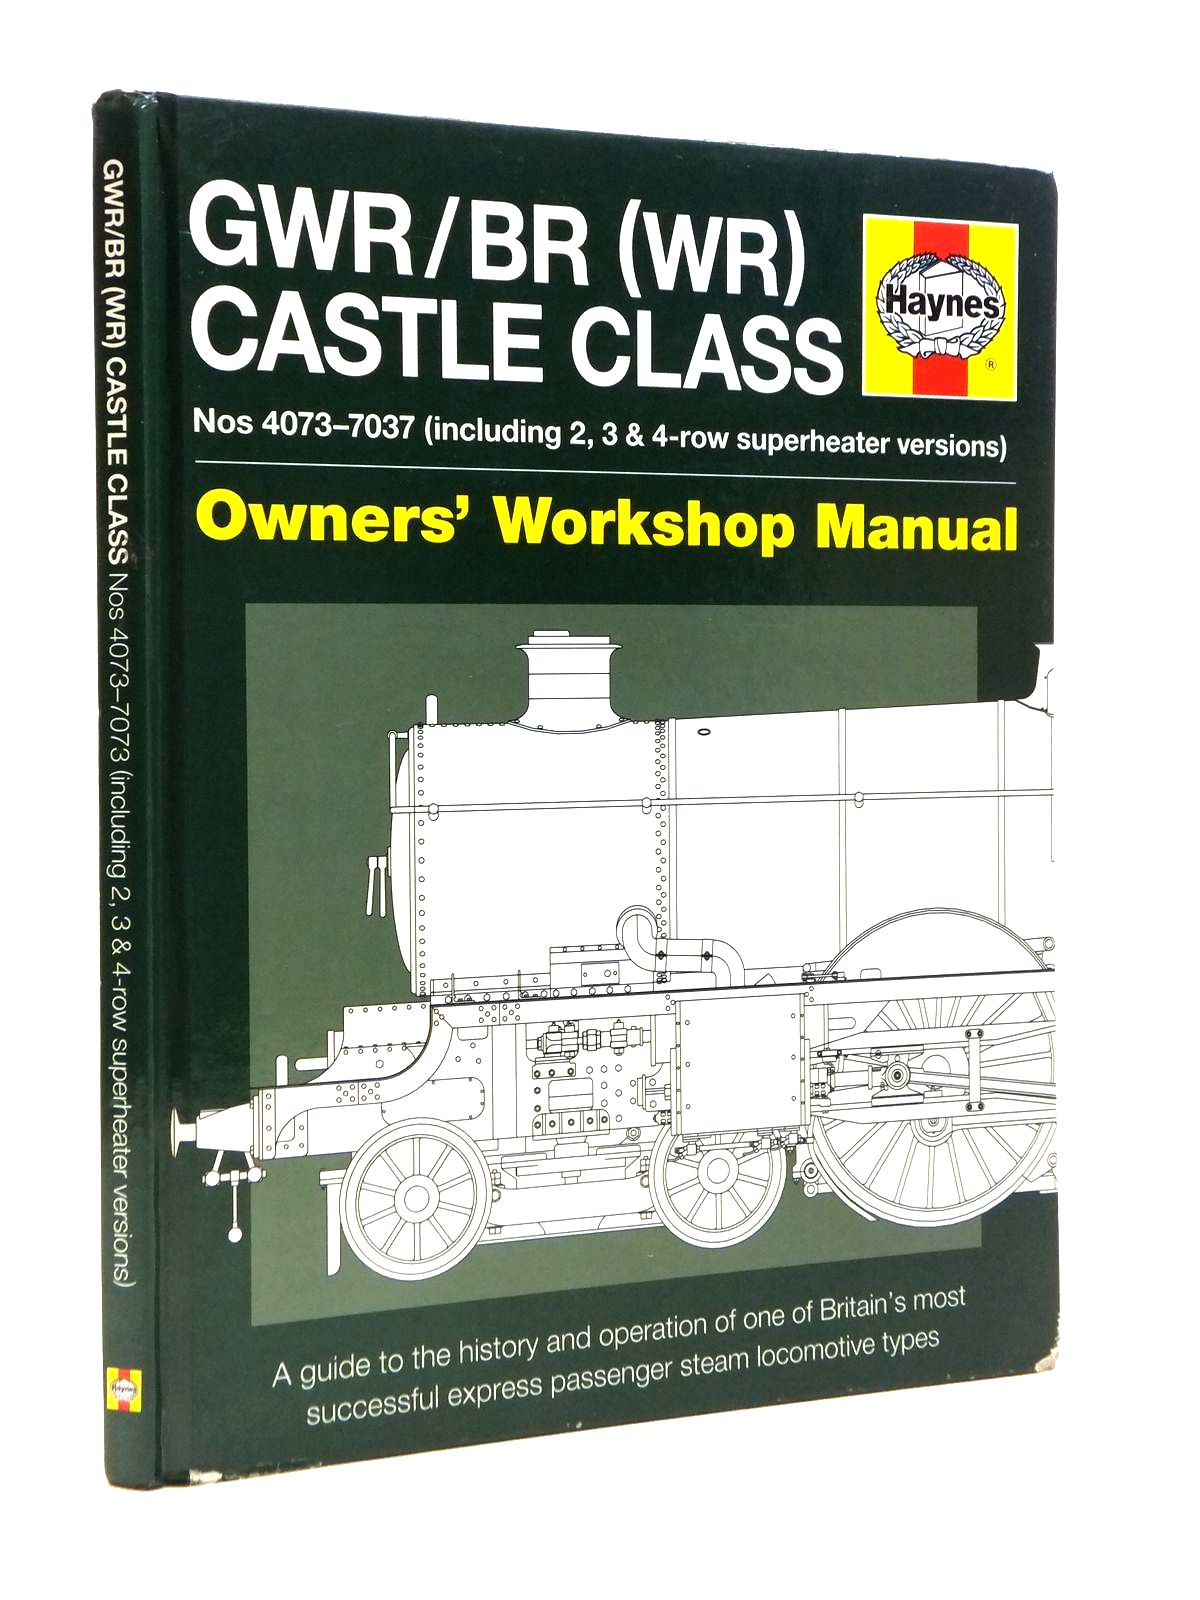 Photo of GWR/BR (WR) CASTLE CLASS OWNER'S WORKSHOP MANUAL written by Fermor, Drew published by Haynes Publishing (STOCK CODE: 1208288)  for sale by Stella & Rose's Books